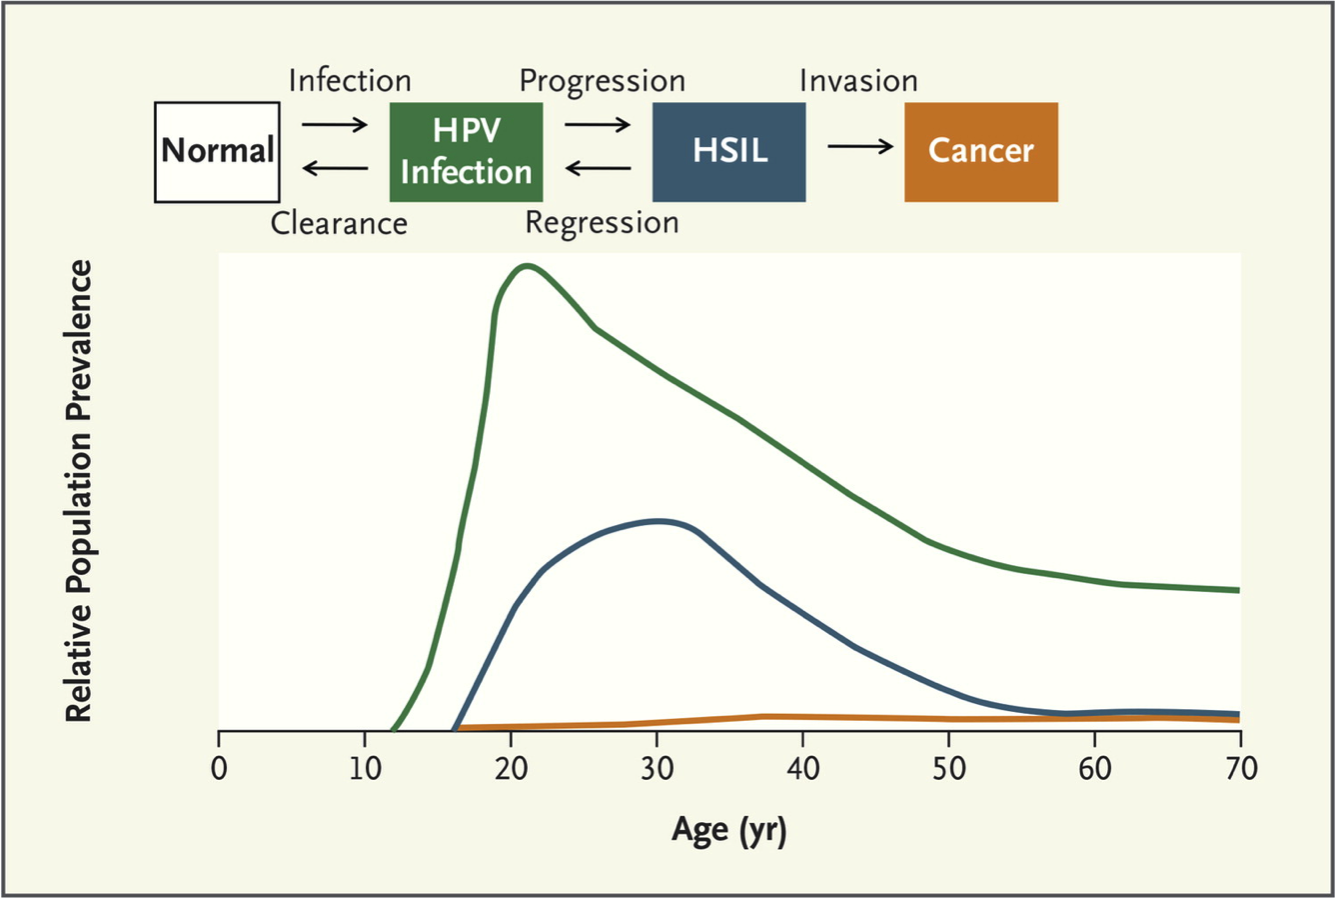 hpv and epidemiology Impact genital human papillomavirus (hpv) infection is the most commonly  diagnosed sexually transmitted infection in the united states and is a necessary .